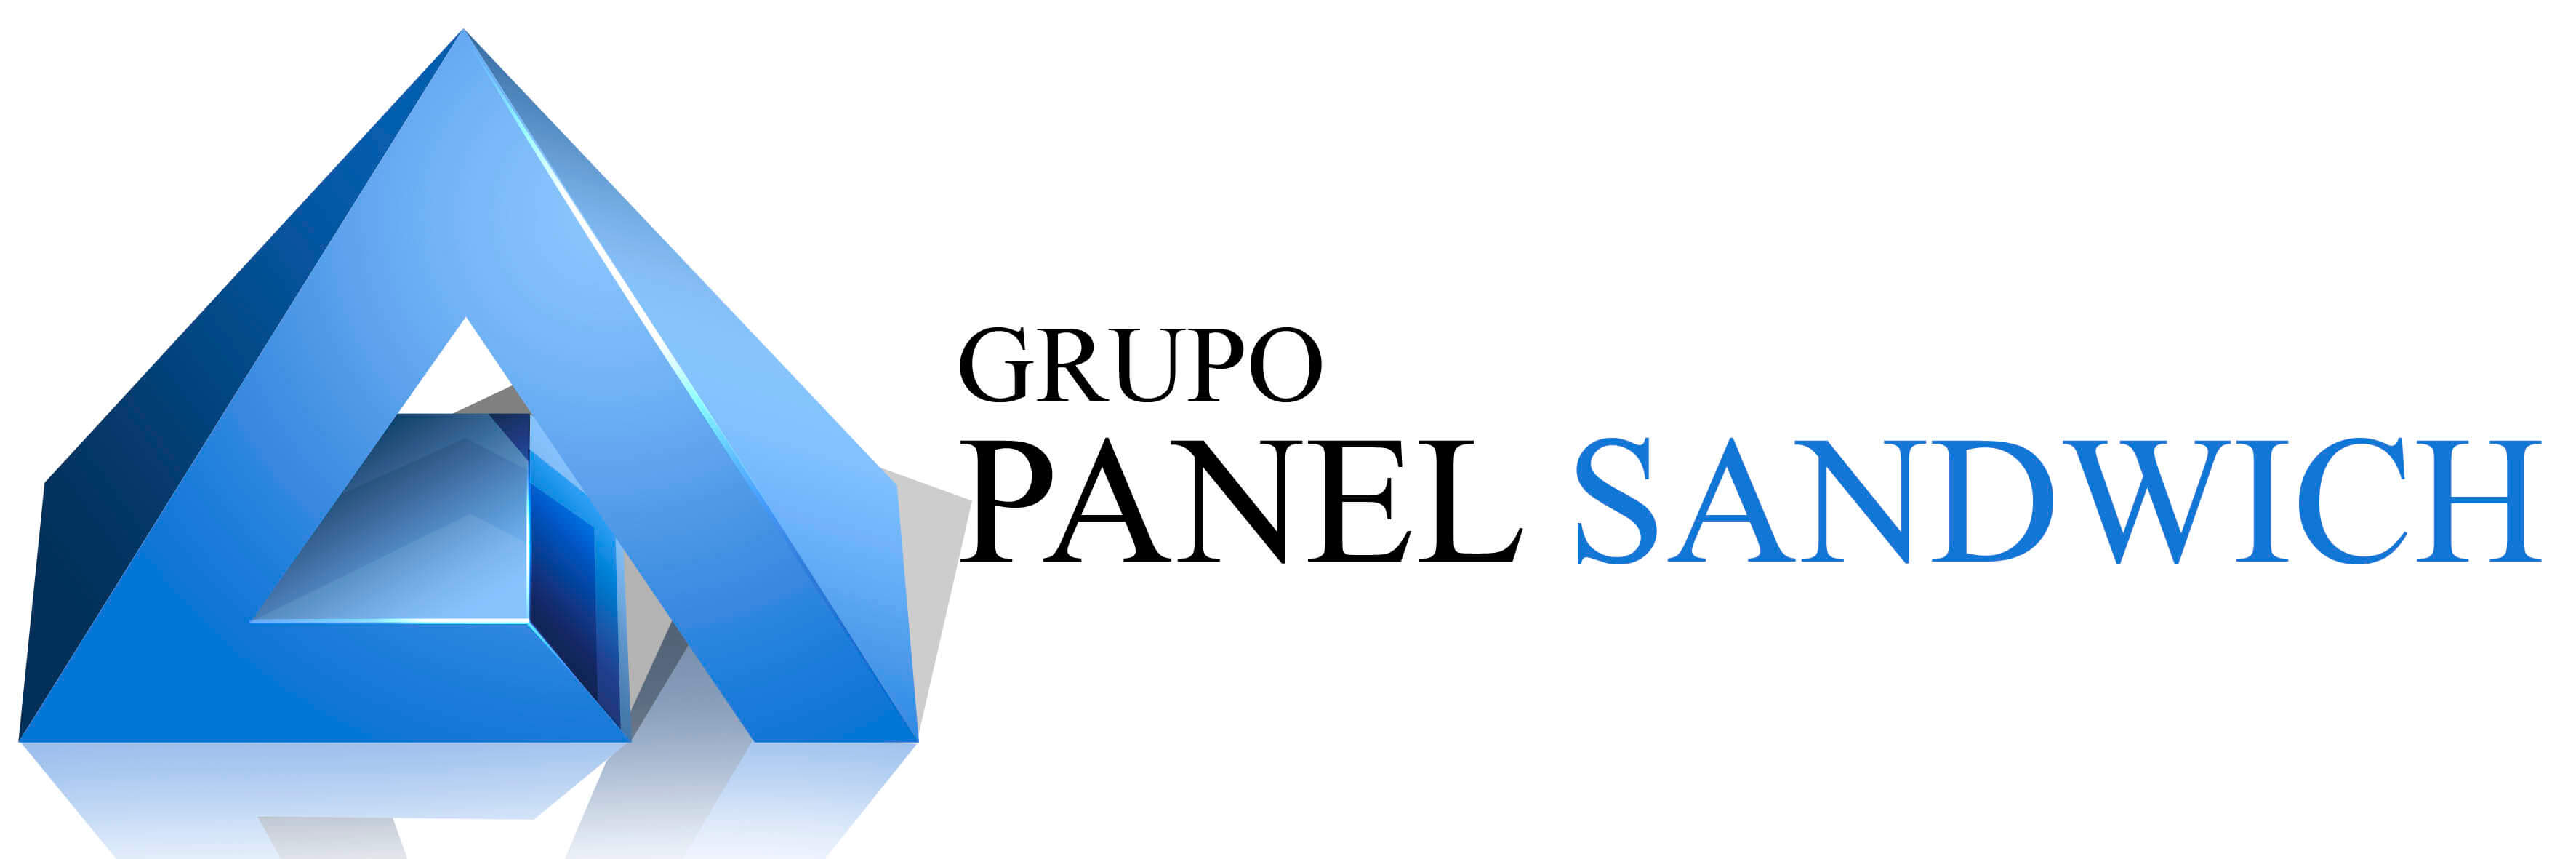 Panel Sandwich Group Uruguay, Division LATAM